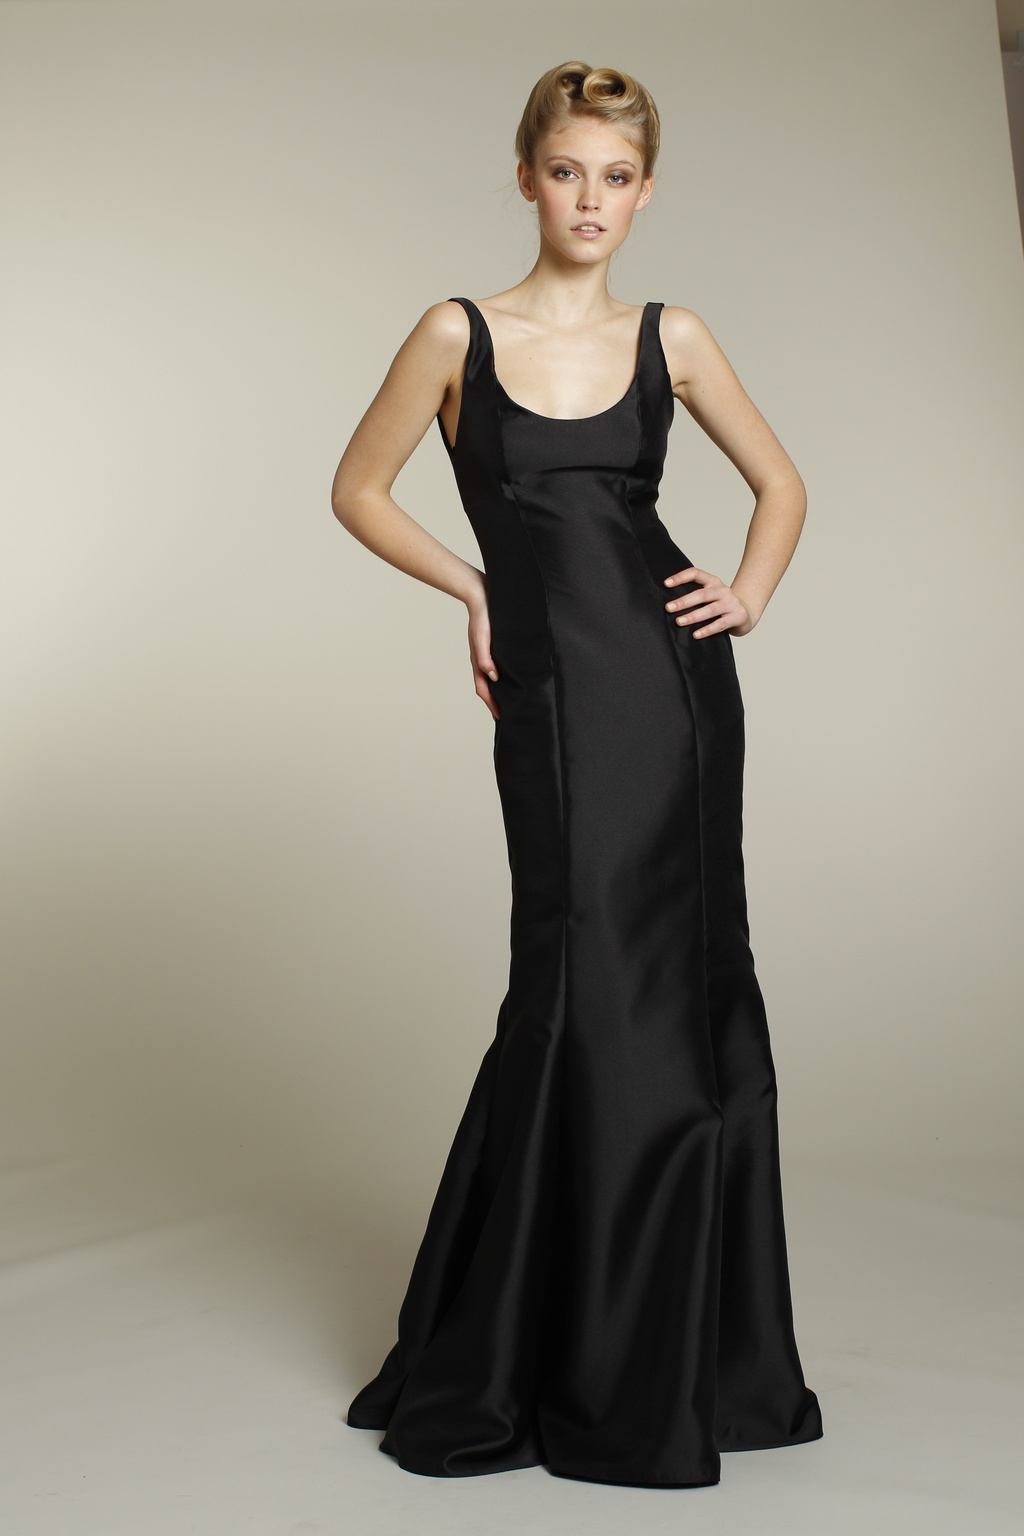 Bridesmaids-dresses-jlm-fall-2011-gowns-black-long.full